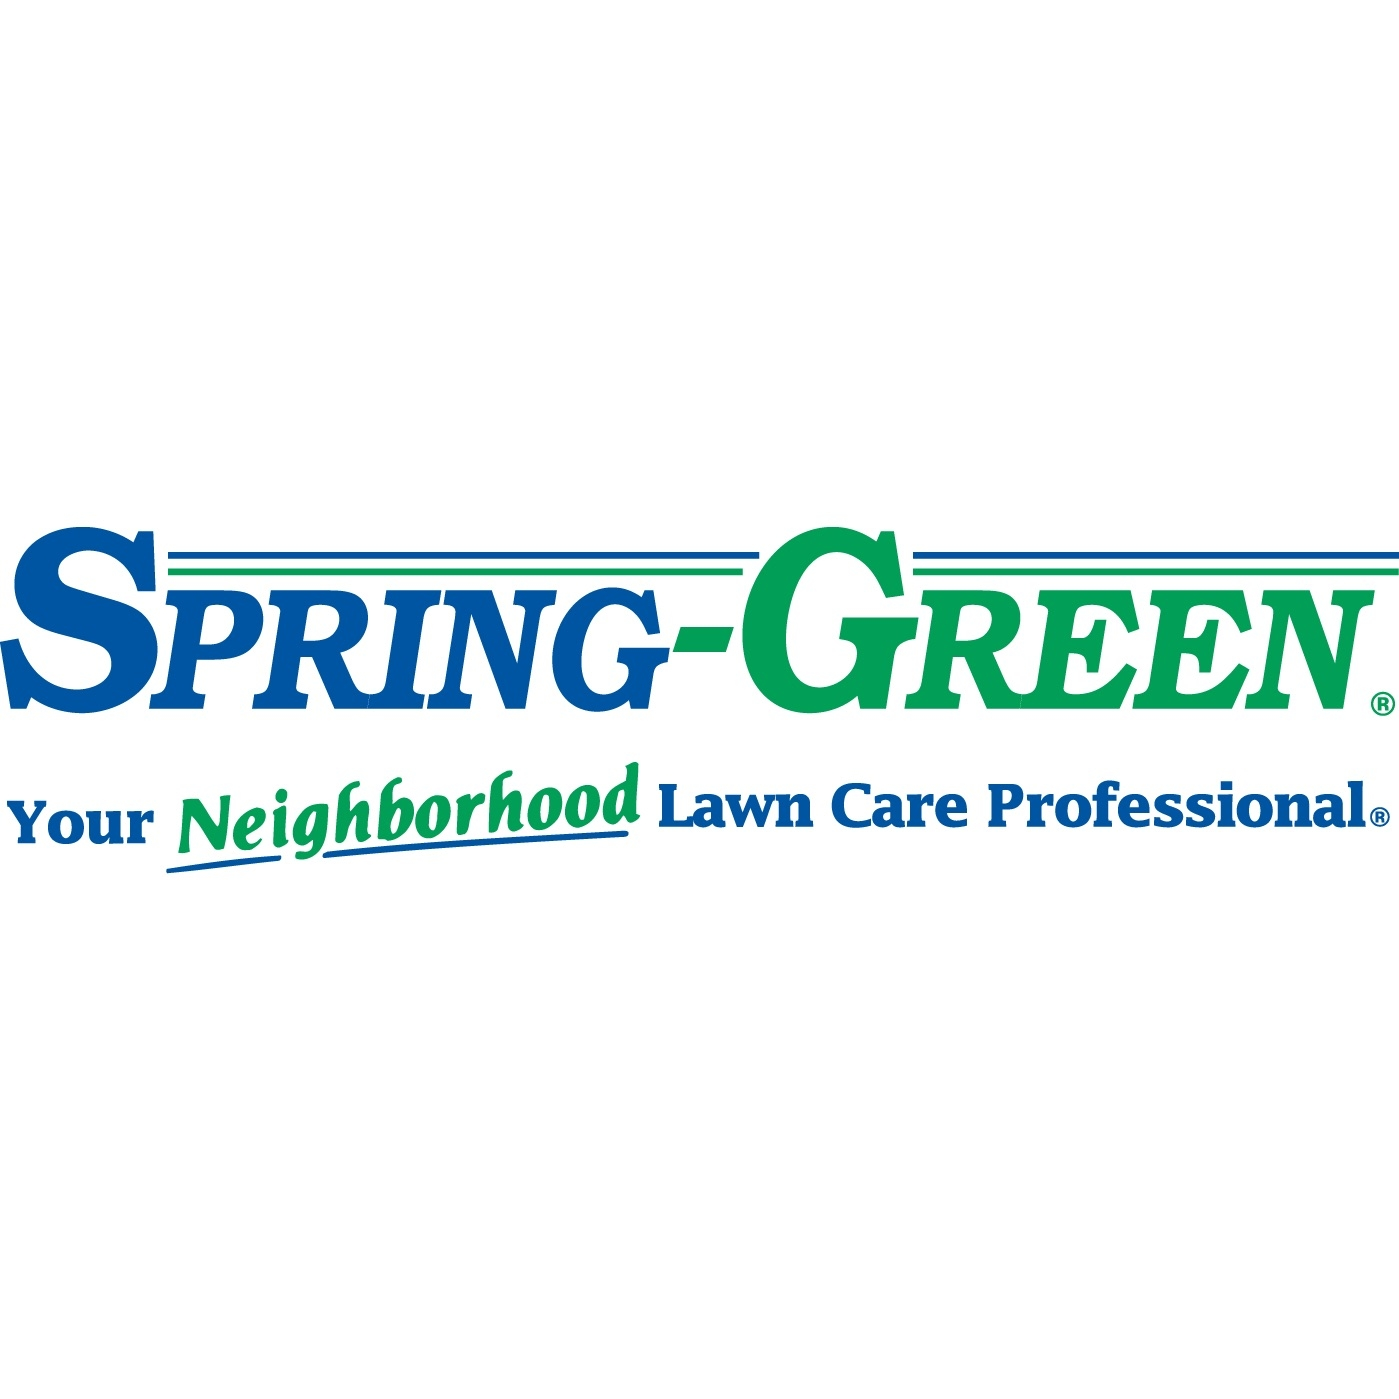 Car services near me in kenmore washington for Local lawn care services